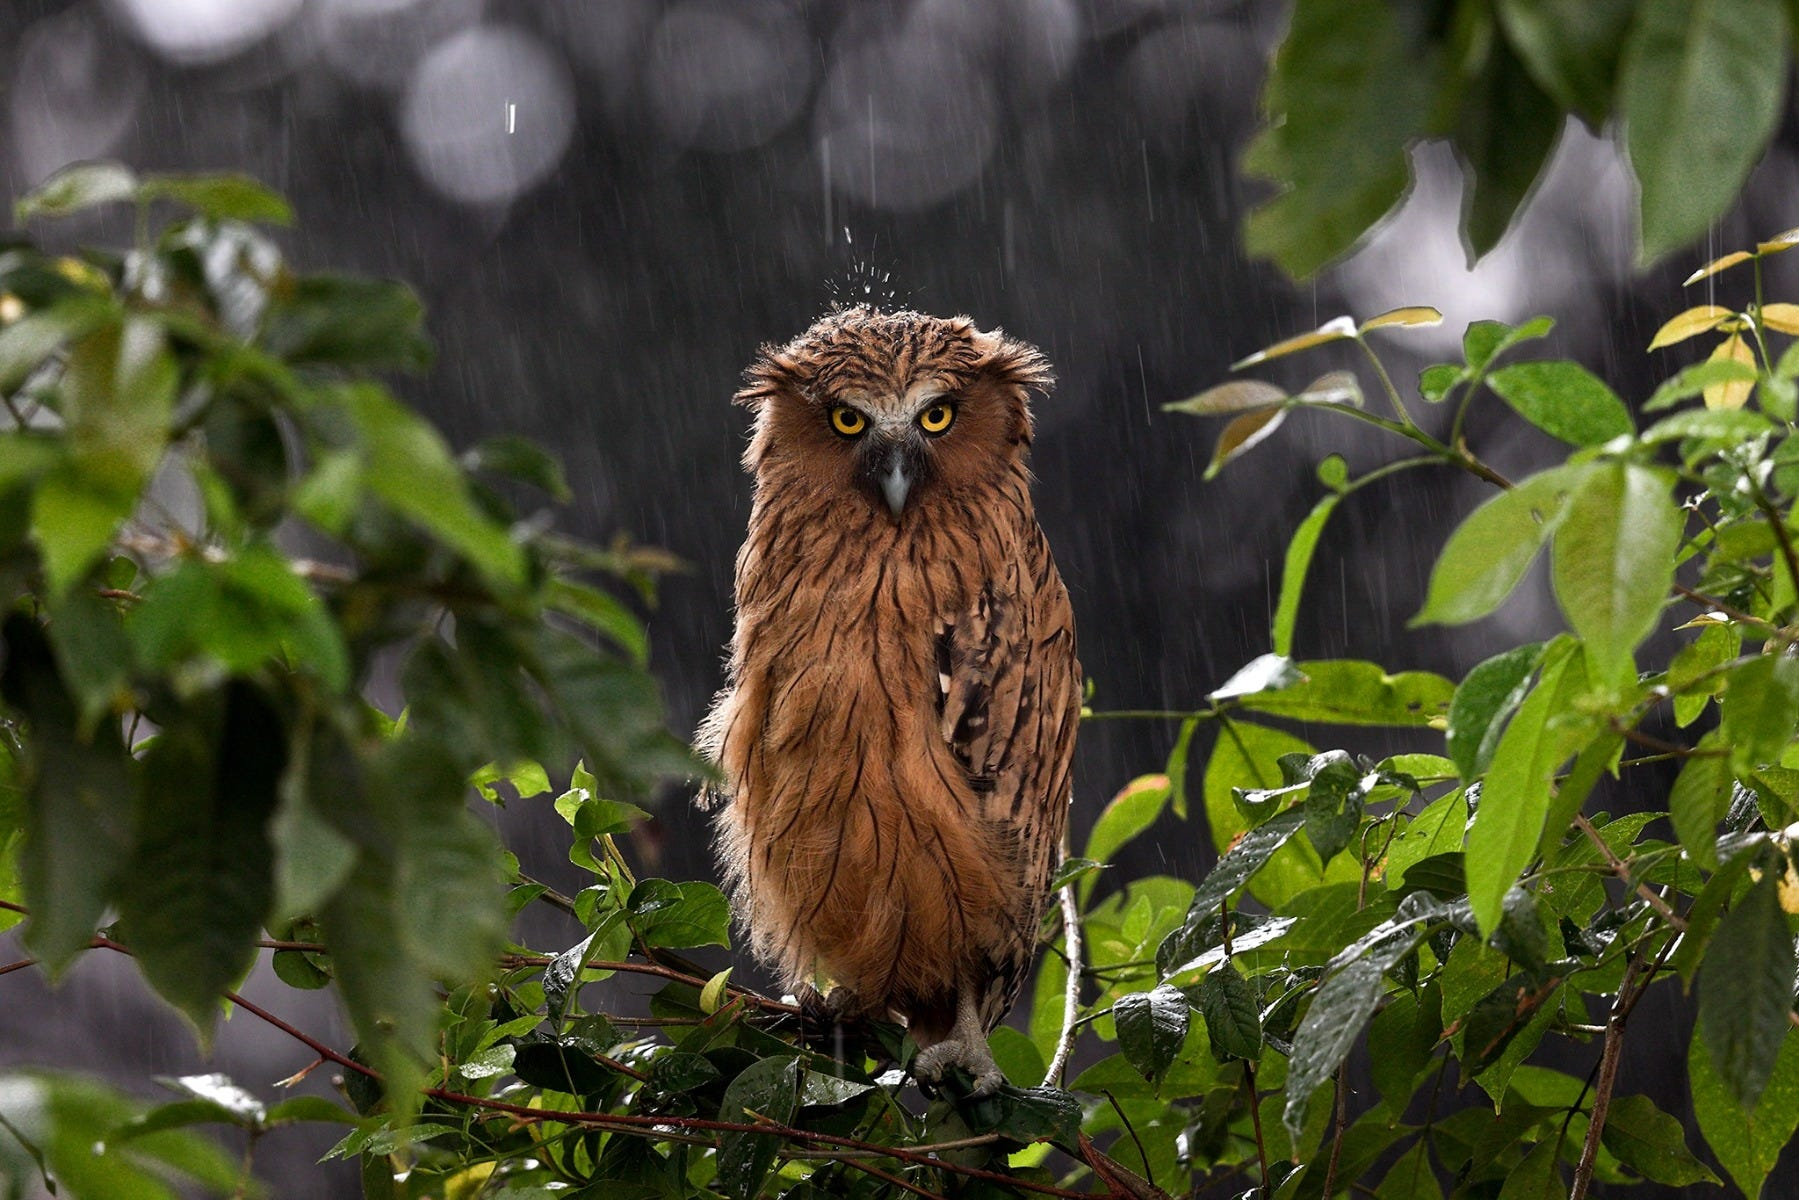 Buffy Fish Owl shot by Canon Photographer William Tan using Canon EOS R6